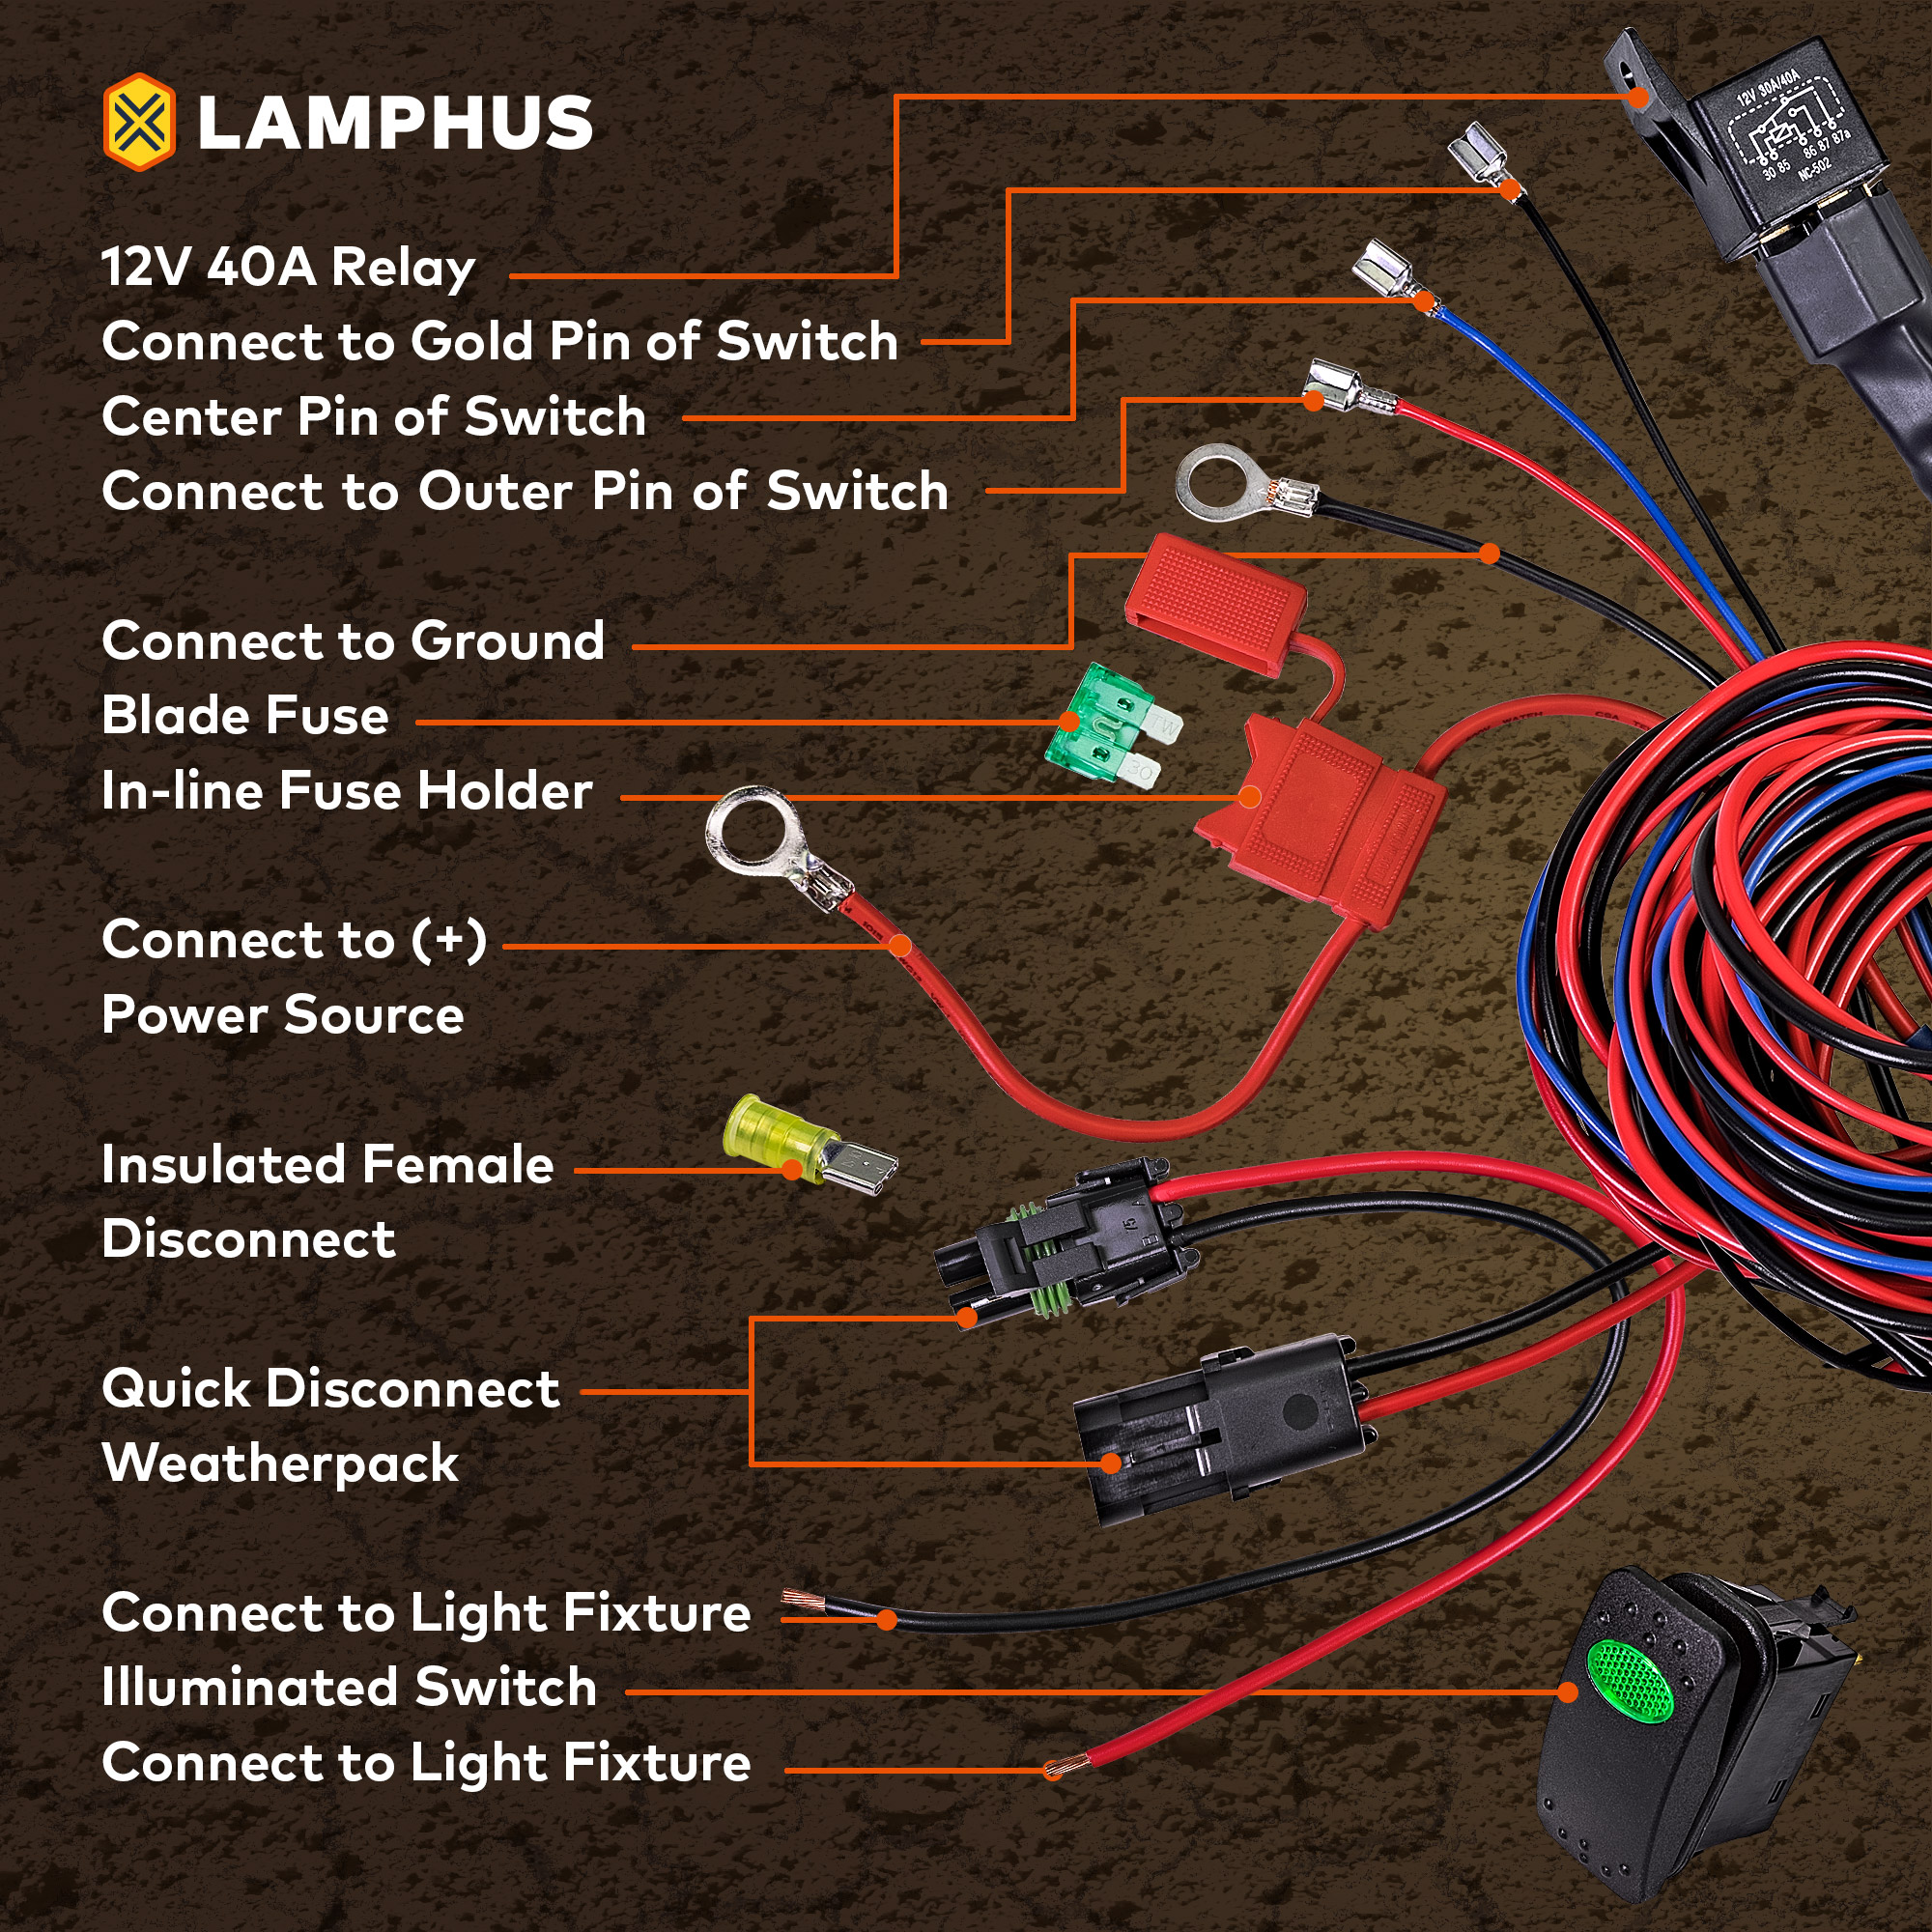 hight resolution of lamphus orwh05 17 heavy duty led off road light wiring harness set amber on off switch walmart com